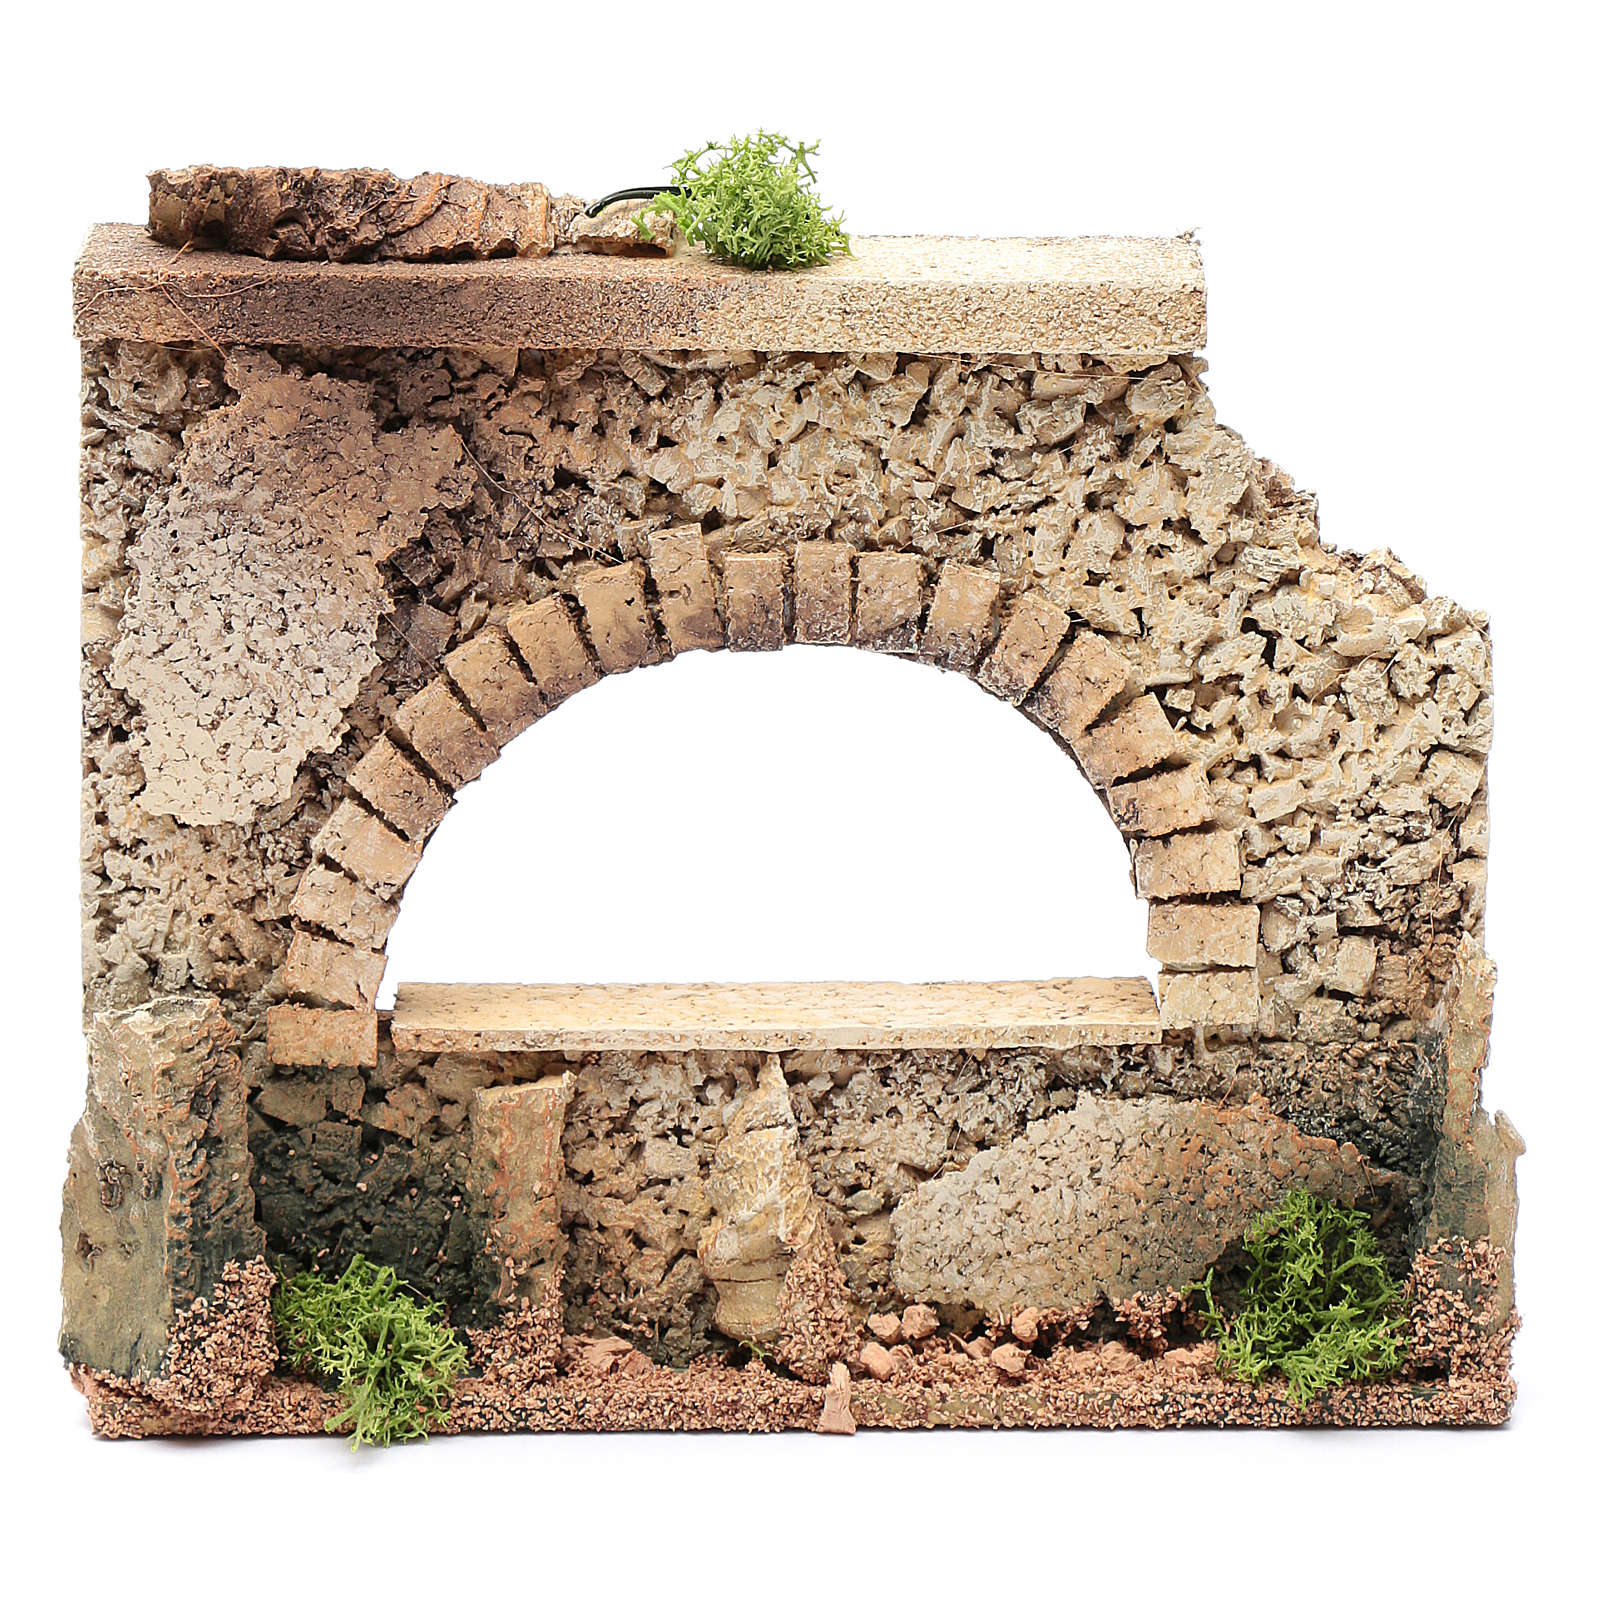 Nativity scene surrounding wall with arched window  15x20x5 cm 4